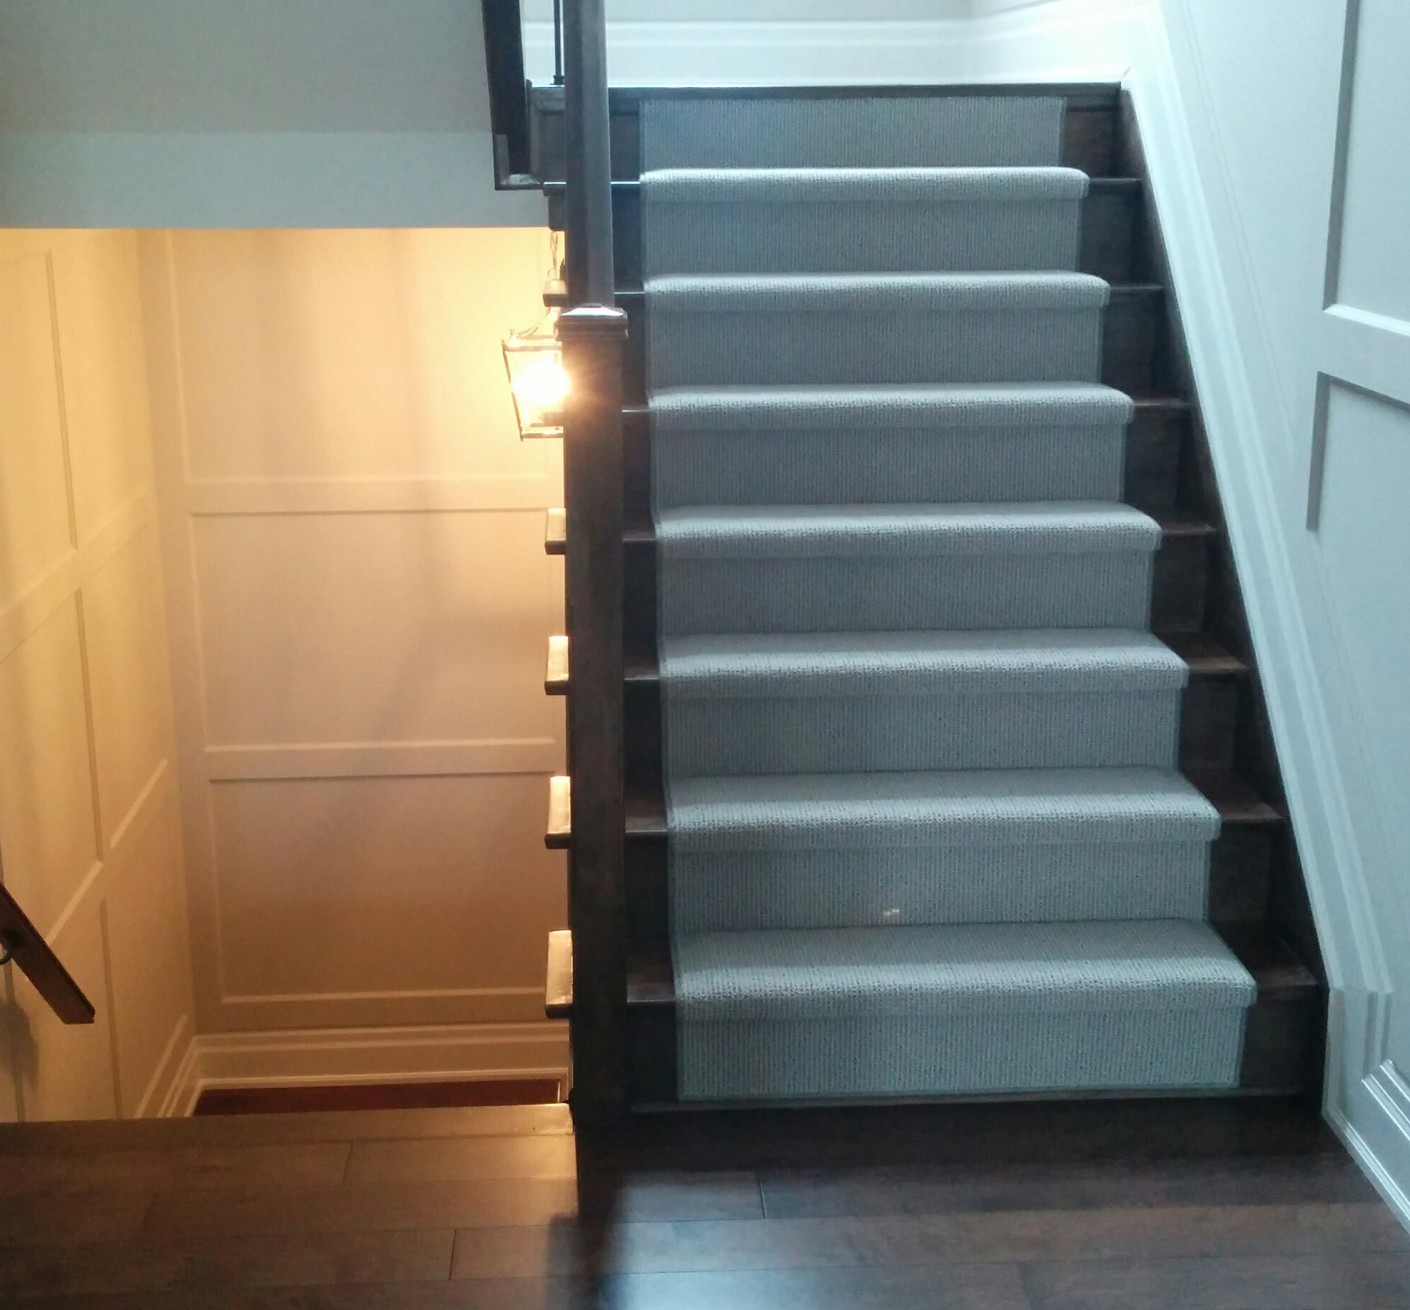 Modern Wool Carpet Runner on Stairs, Sales and Installation Services Toronto